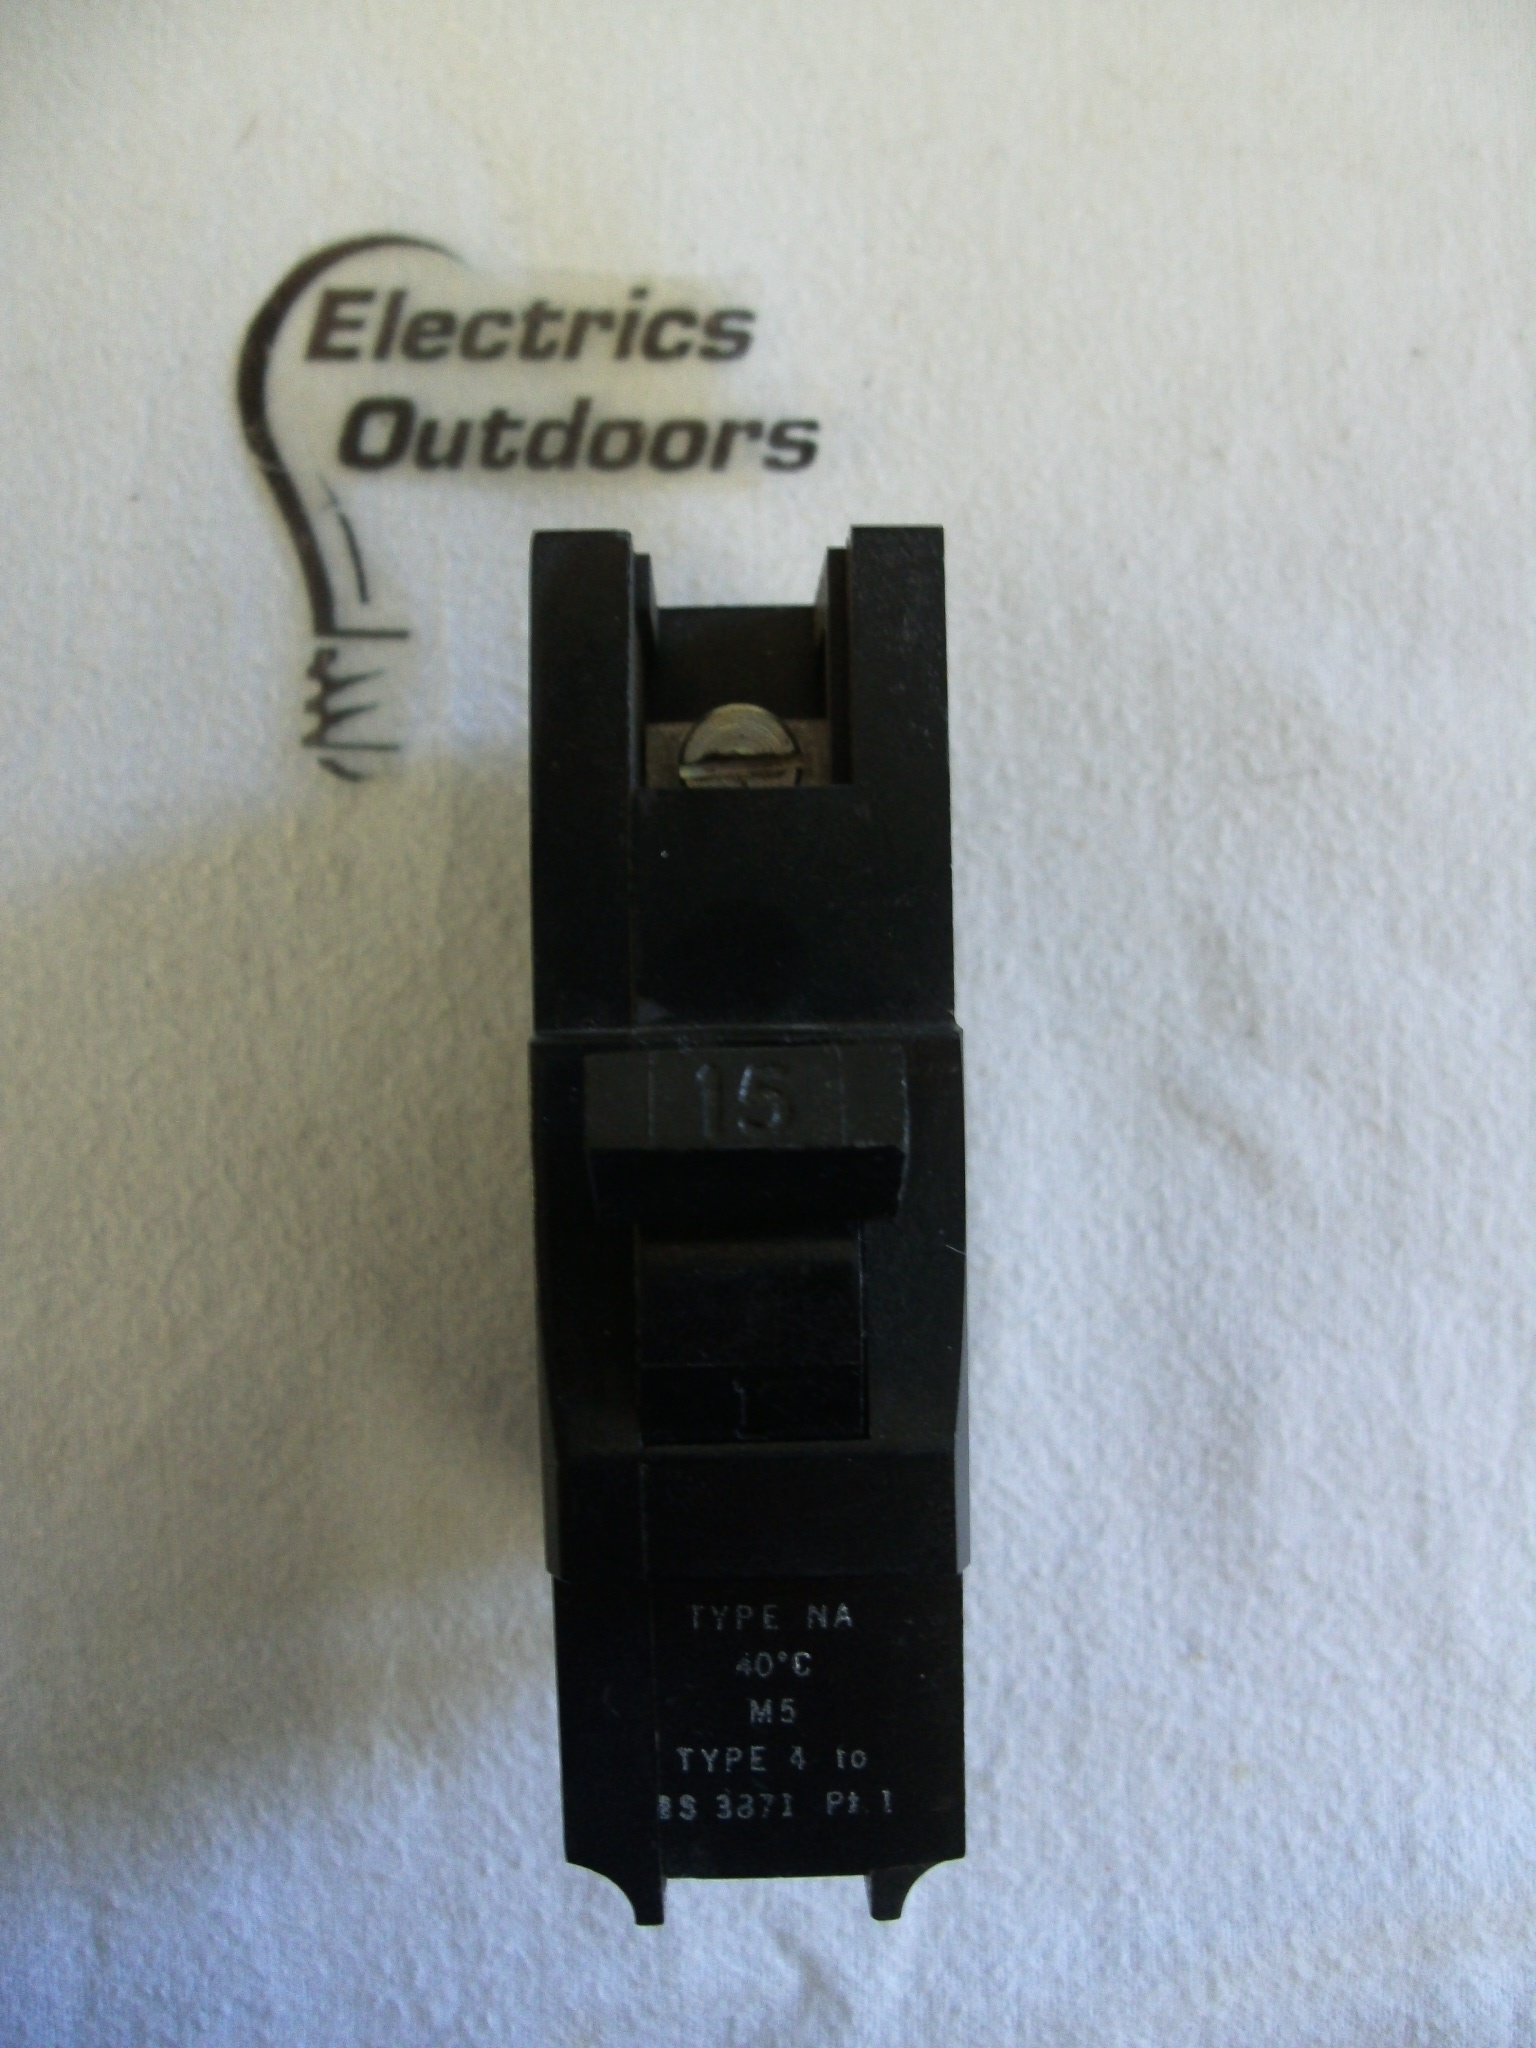 FEDERAL ELECTRIC 15 AMP TYPE 4 M5 MCB CIRCUIT BREAKER 415V STABLOK NA BS 3871